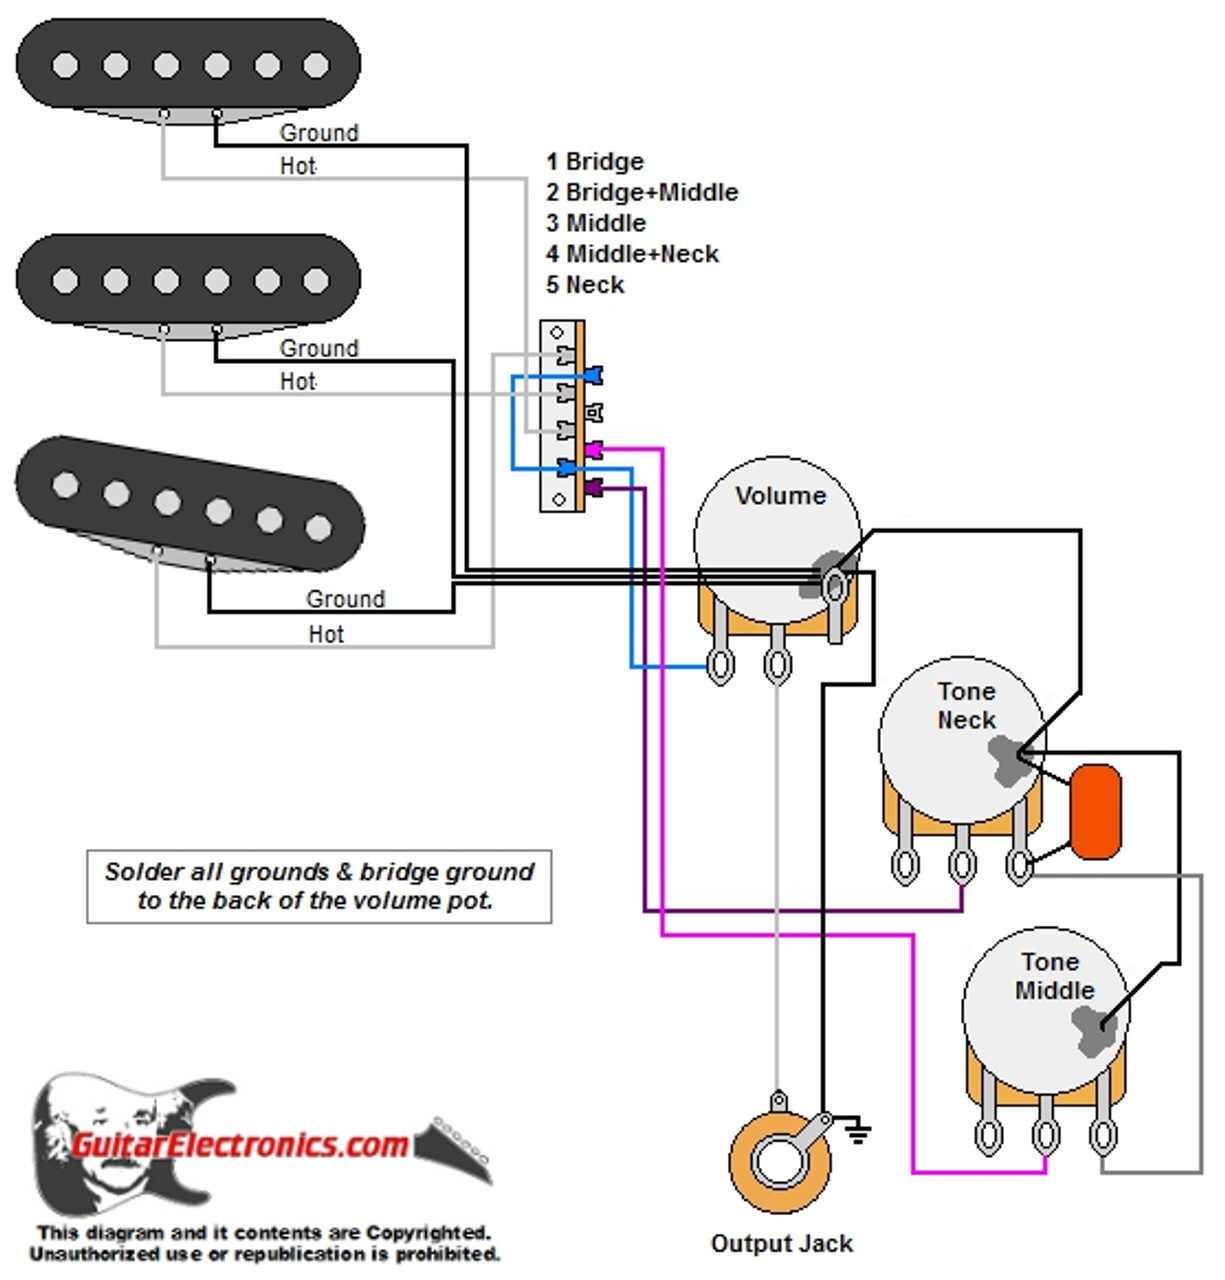 guitar electronics understanding wiring and diagrams learn step by Vintage Guitar Wiring Diagram